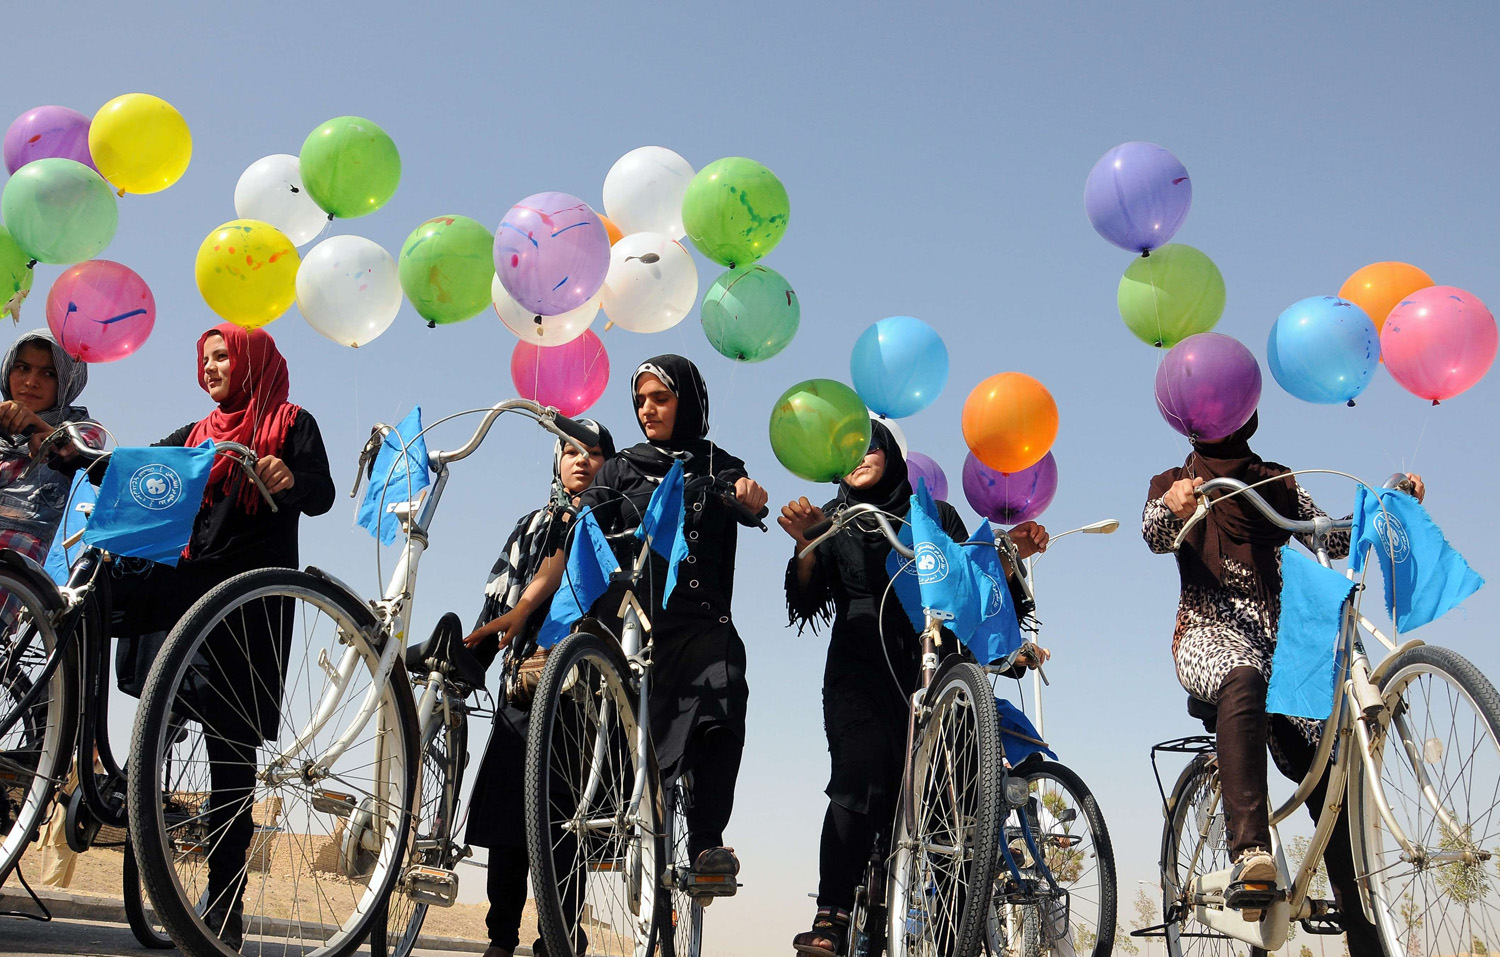 Afghan women take part in a cycling race during World Peace Day in Mazar-i-sharif, Afghanistan on Sept. 21, 2014.